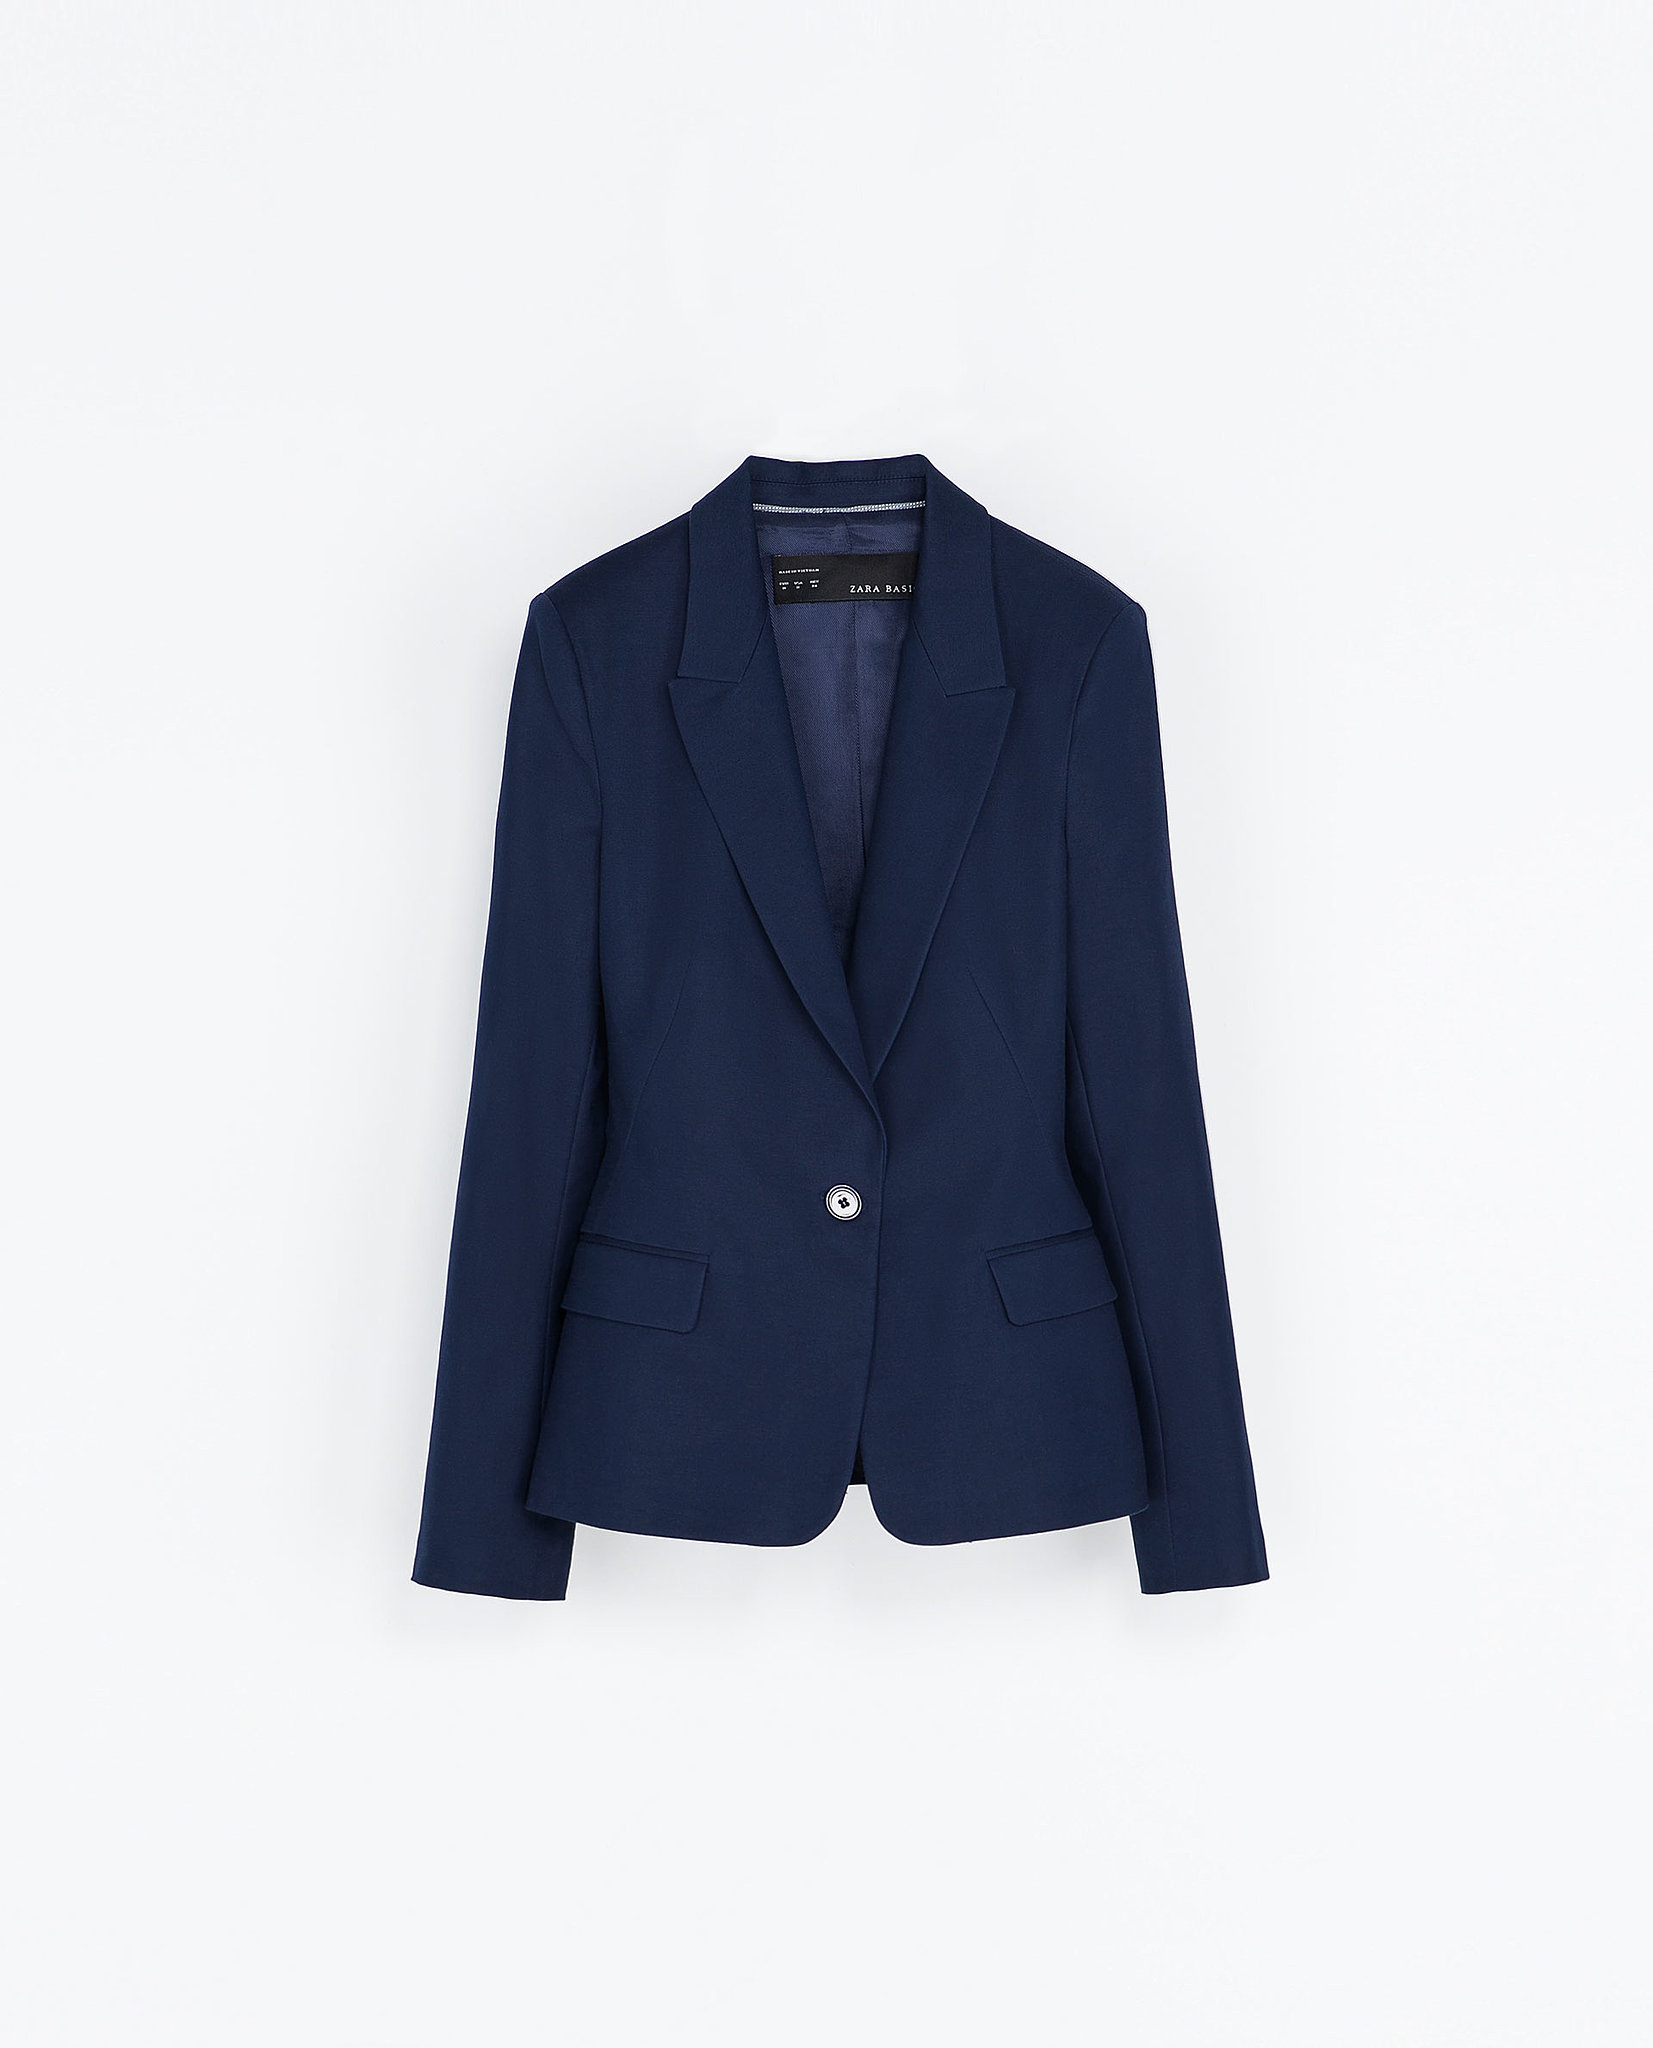 Try mixing this Zara single-button blazer ($50) with black pants for